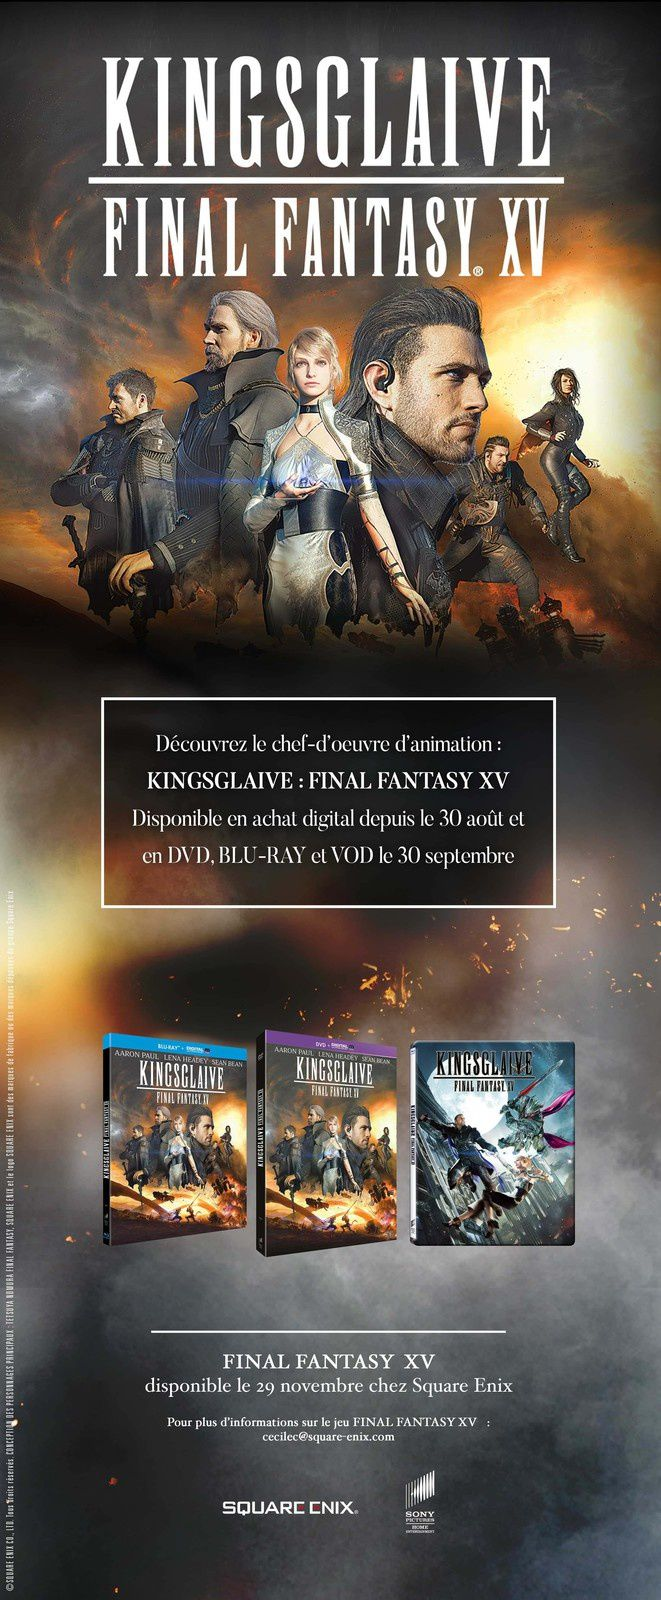 KINGSGLAIVE - FINAL FANTASY XV (BANDE ANNONCE) disponible en DVD, BLU- RAY et VOD le 30 septembre 2016 chez Sony